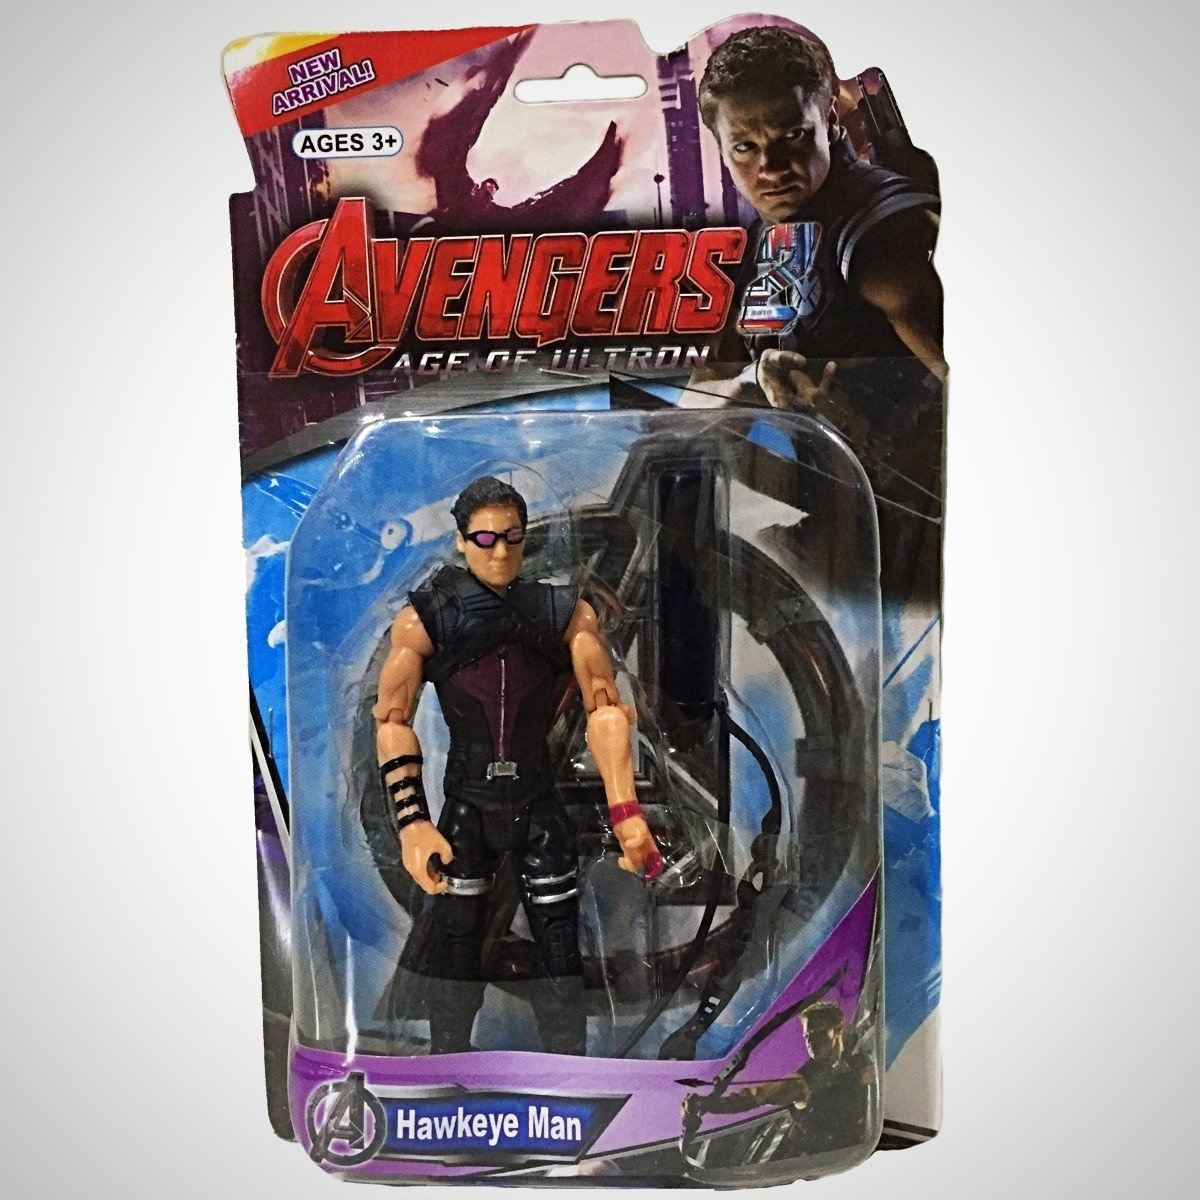 Arqueiro - Vingadores: Era De Ultron - - Action Figures Age Of Avengers Colecionáveis My Geek Stock